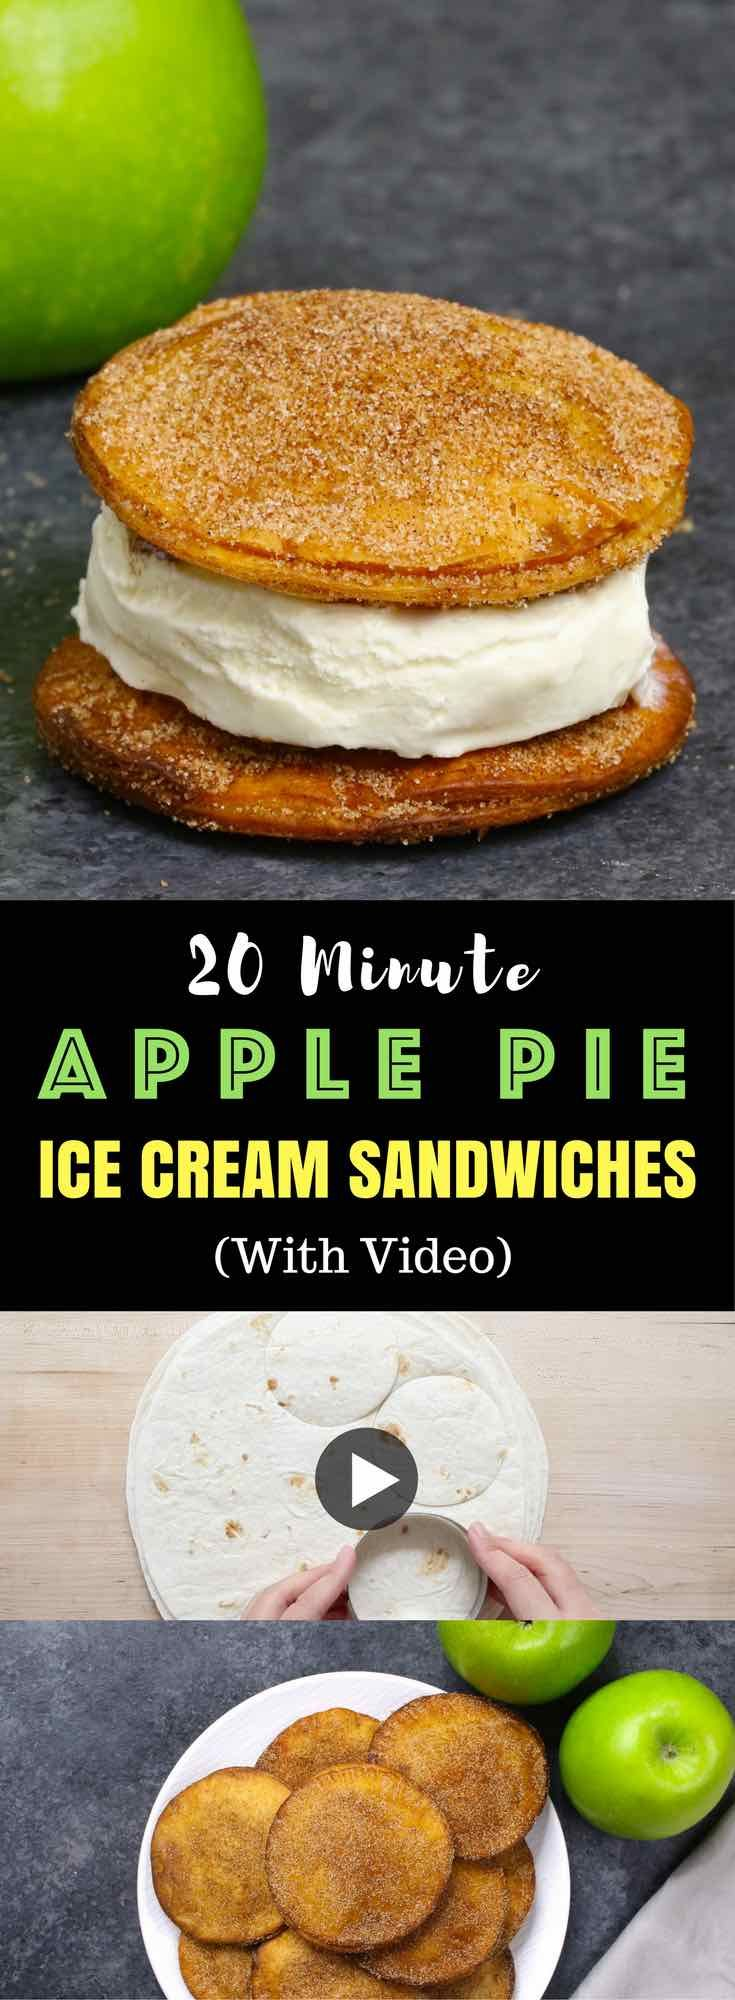 Super easy Apple Pie Ice Cream Sandwiches - Delicious cinnamon sugary apple pie with ice cream in between. A super easy recipe using flour tortillas and comes together in no time! All you need is a few simple ingredients: Flour Tortillas, butter, cinnamon